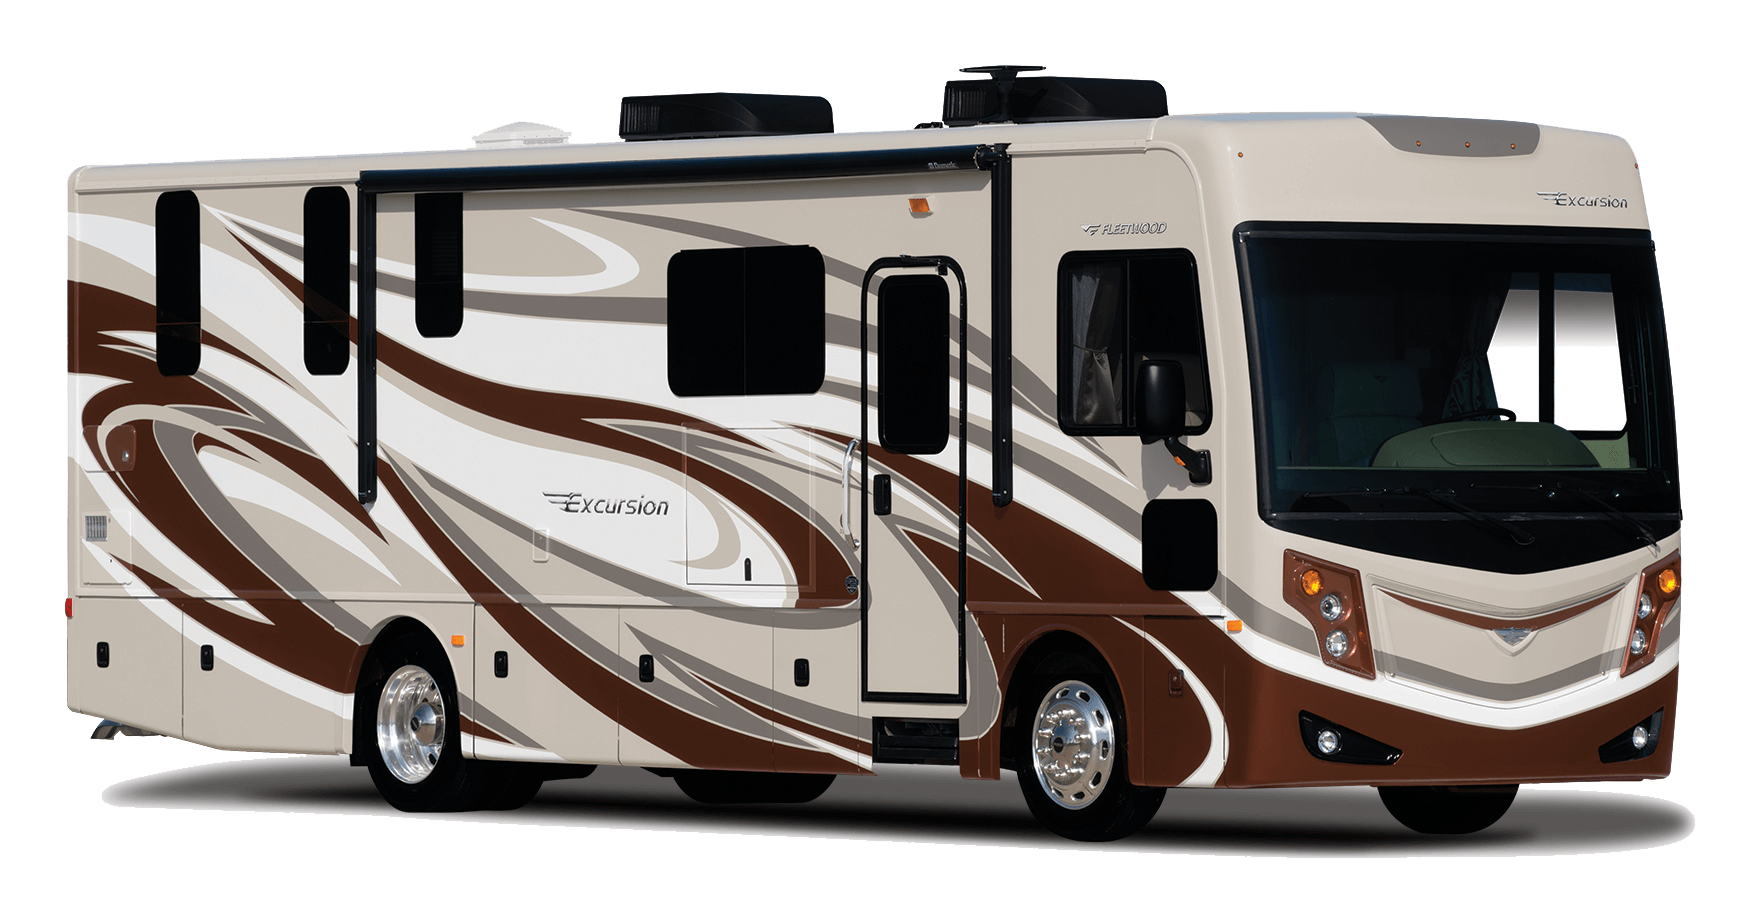 Excursion Class A Diesel Motor Home General Rv